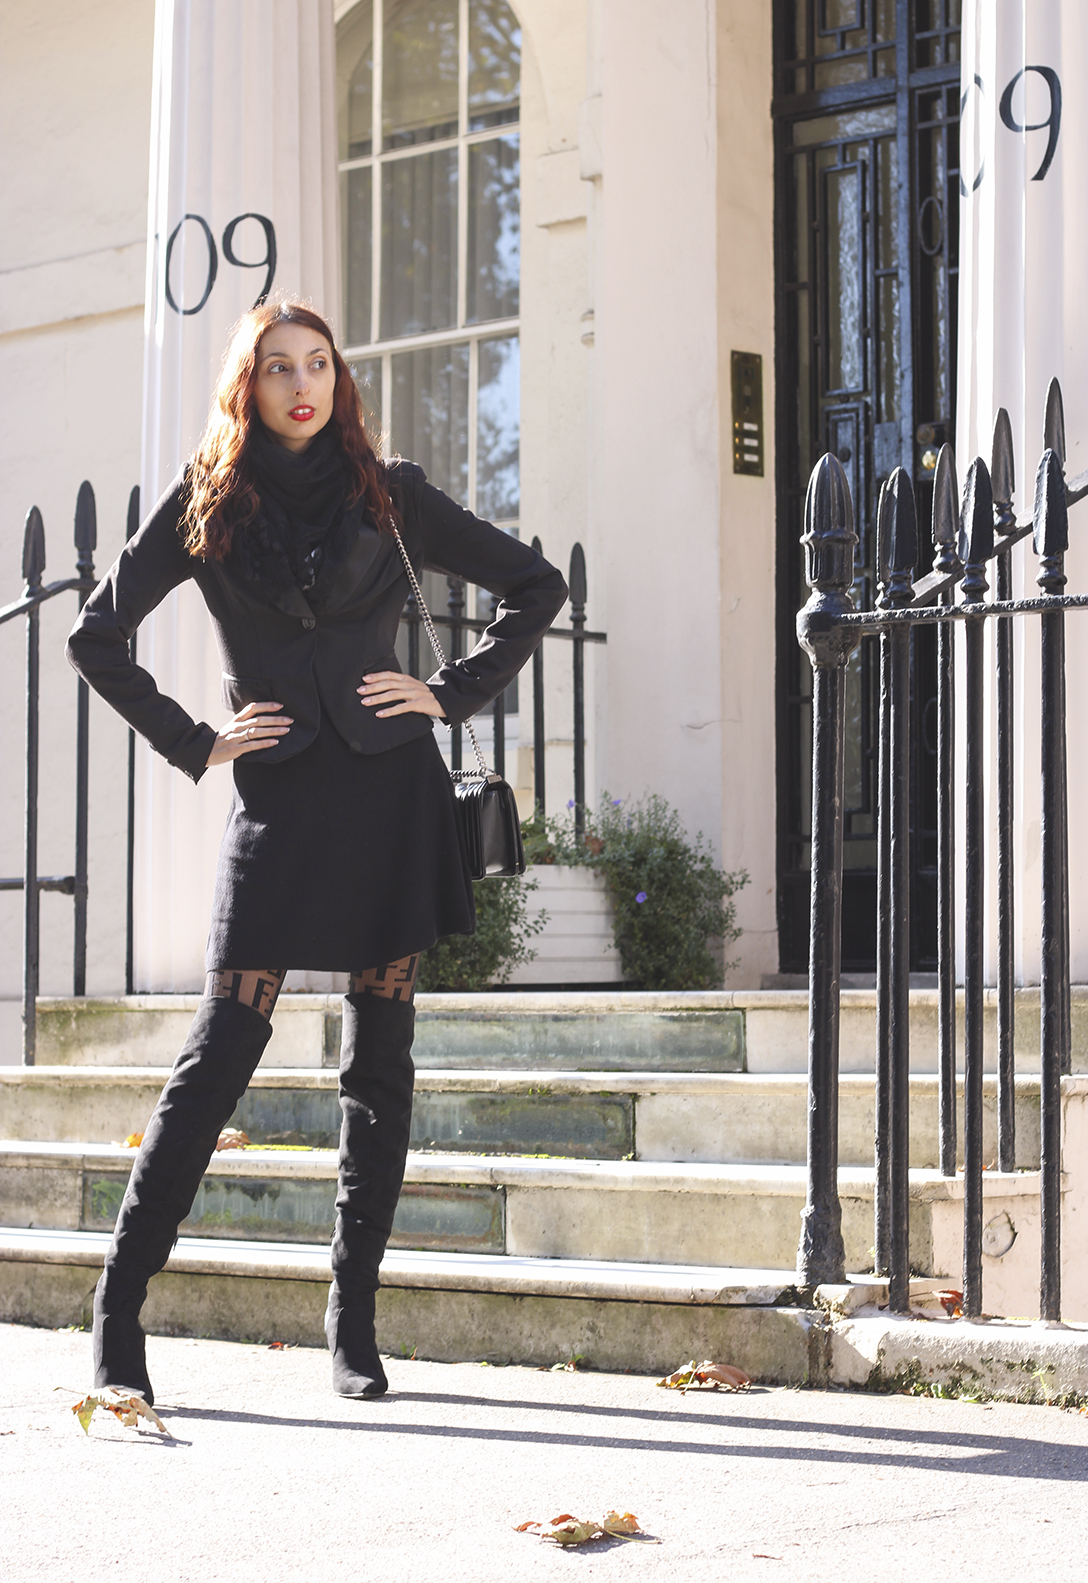 London style tips